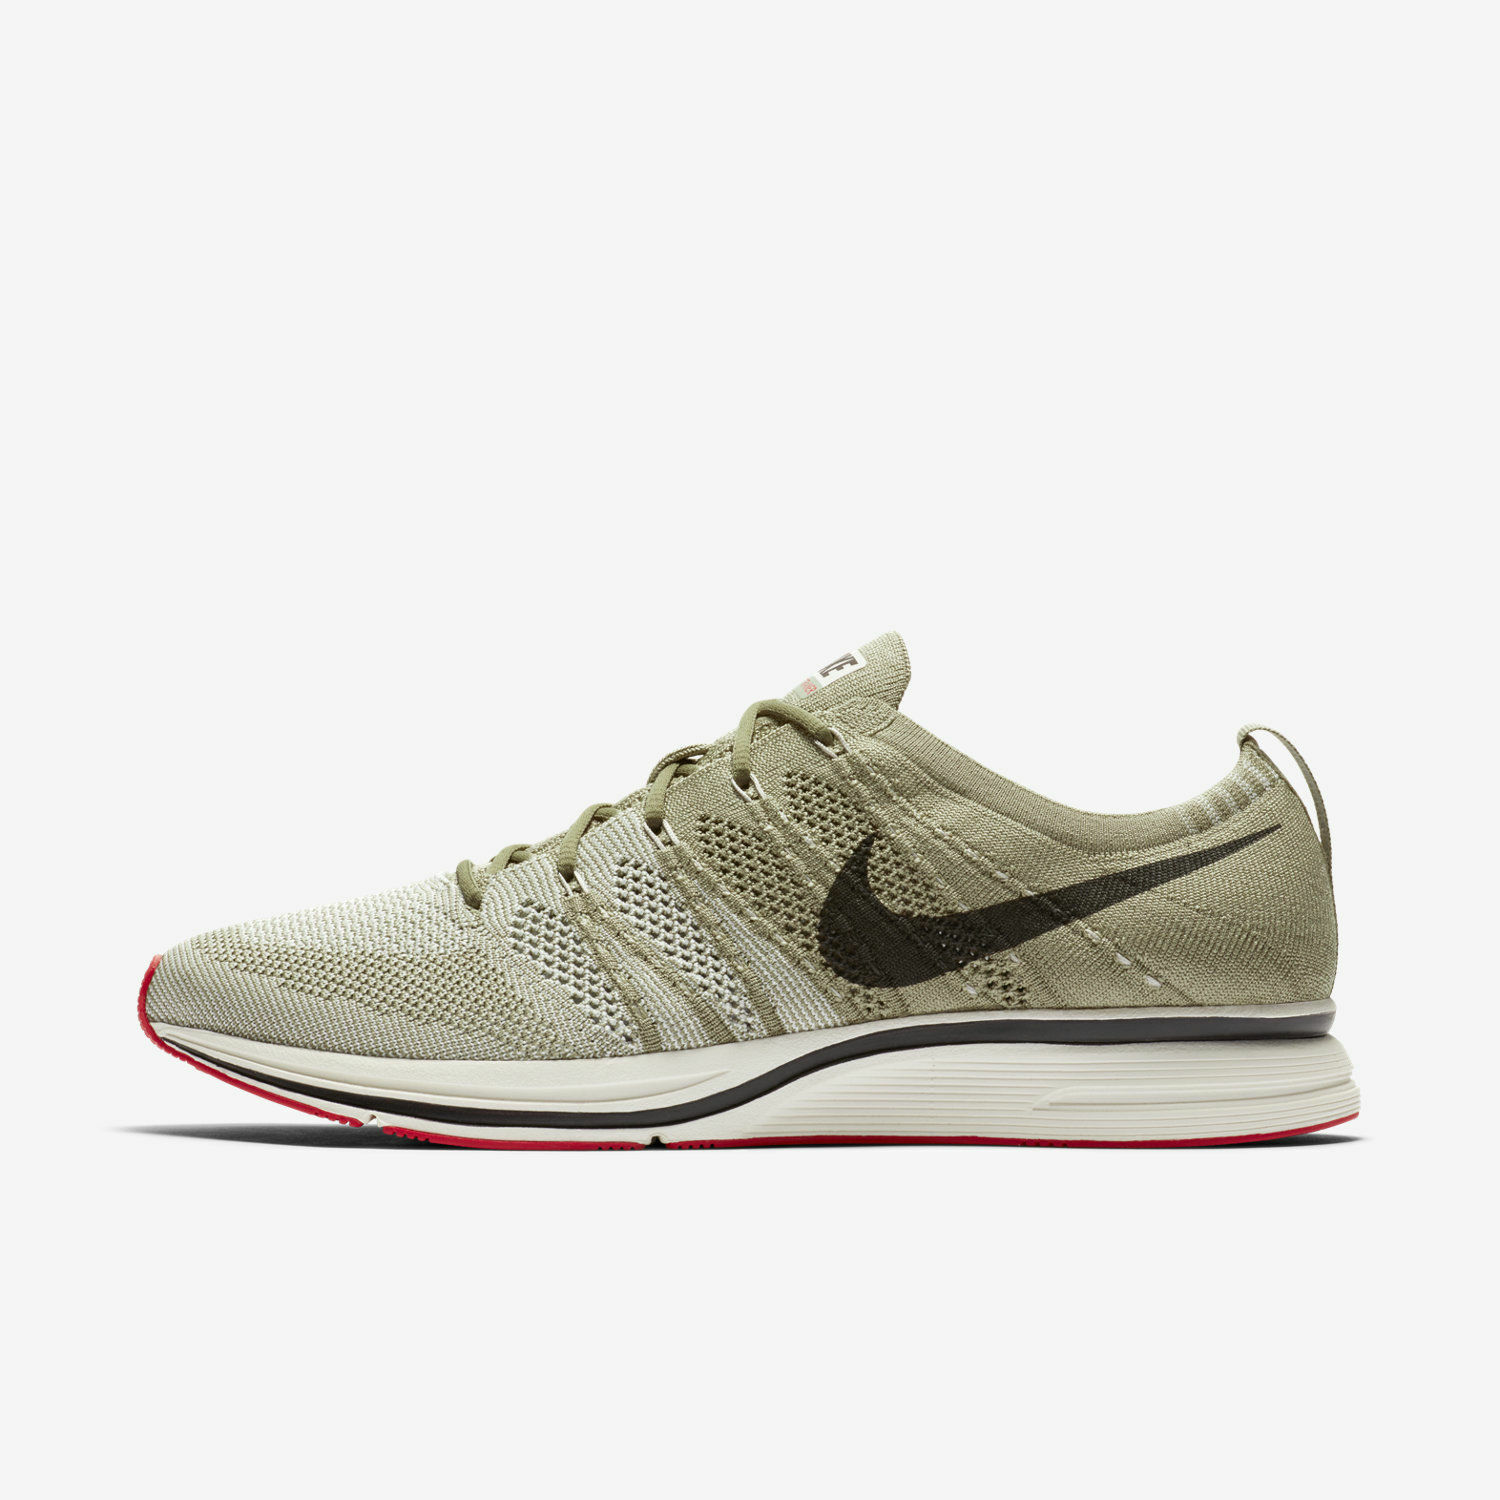 best service eb2da 787c2 ... discount nike flyknit trainer neutral olive velvet brown mens ah8396  201 98116 3a108 ...